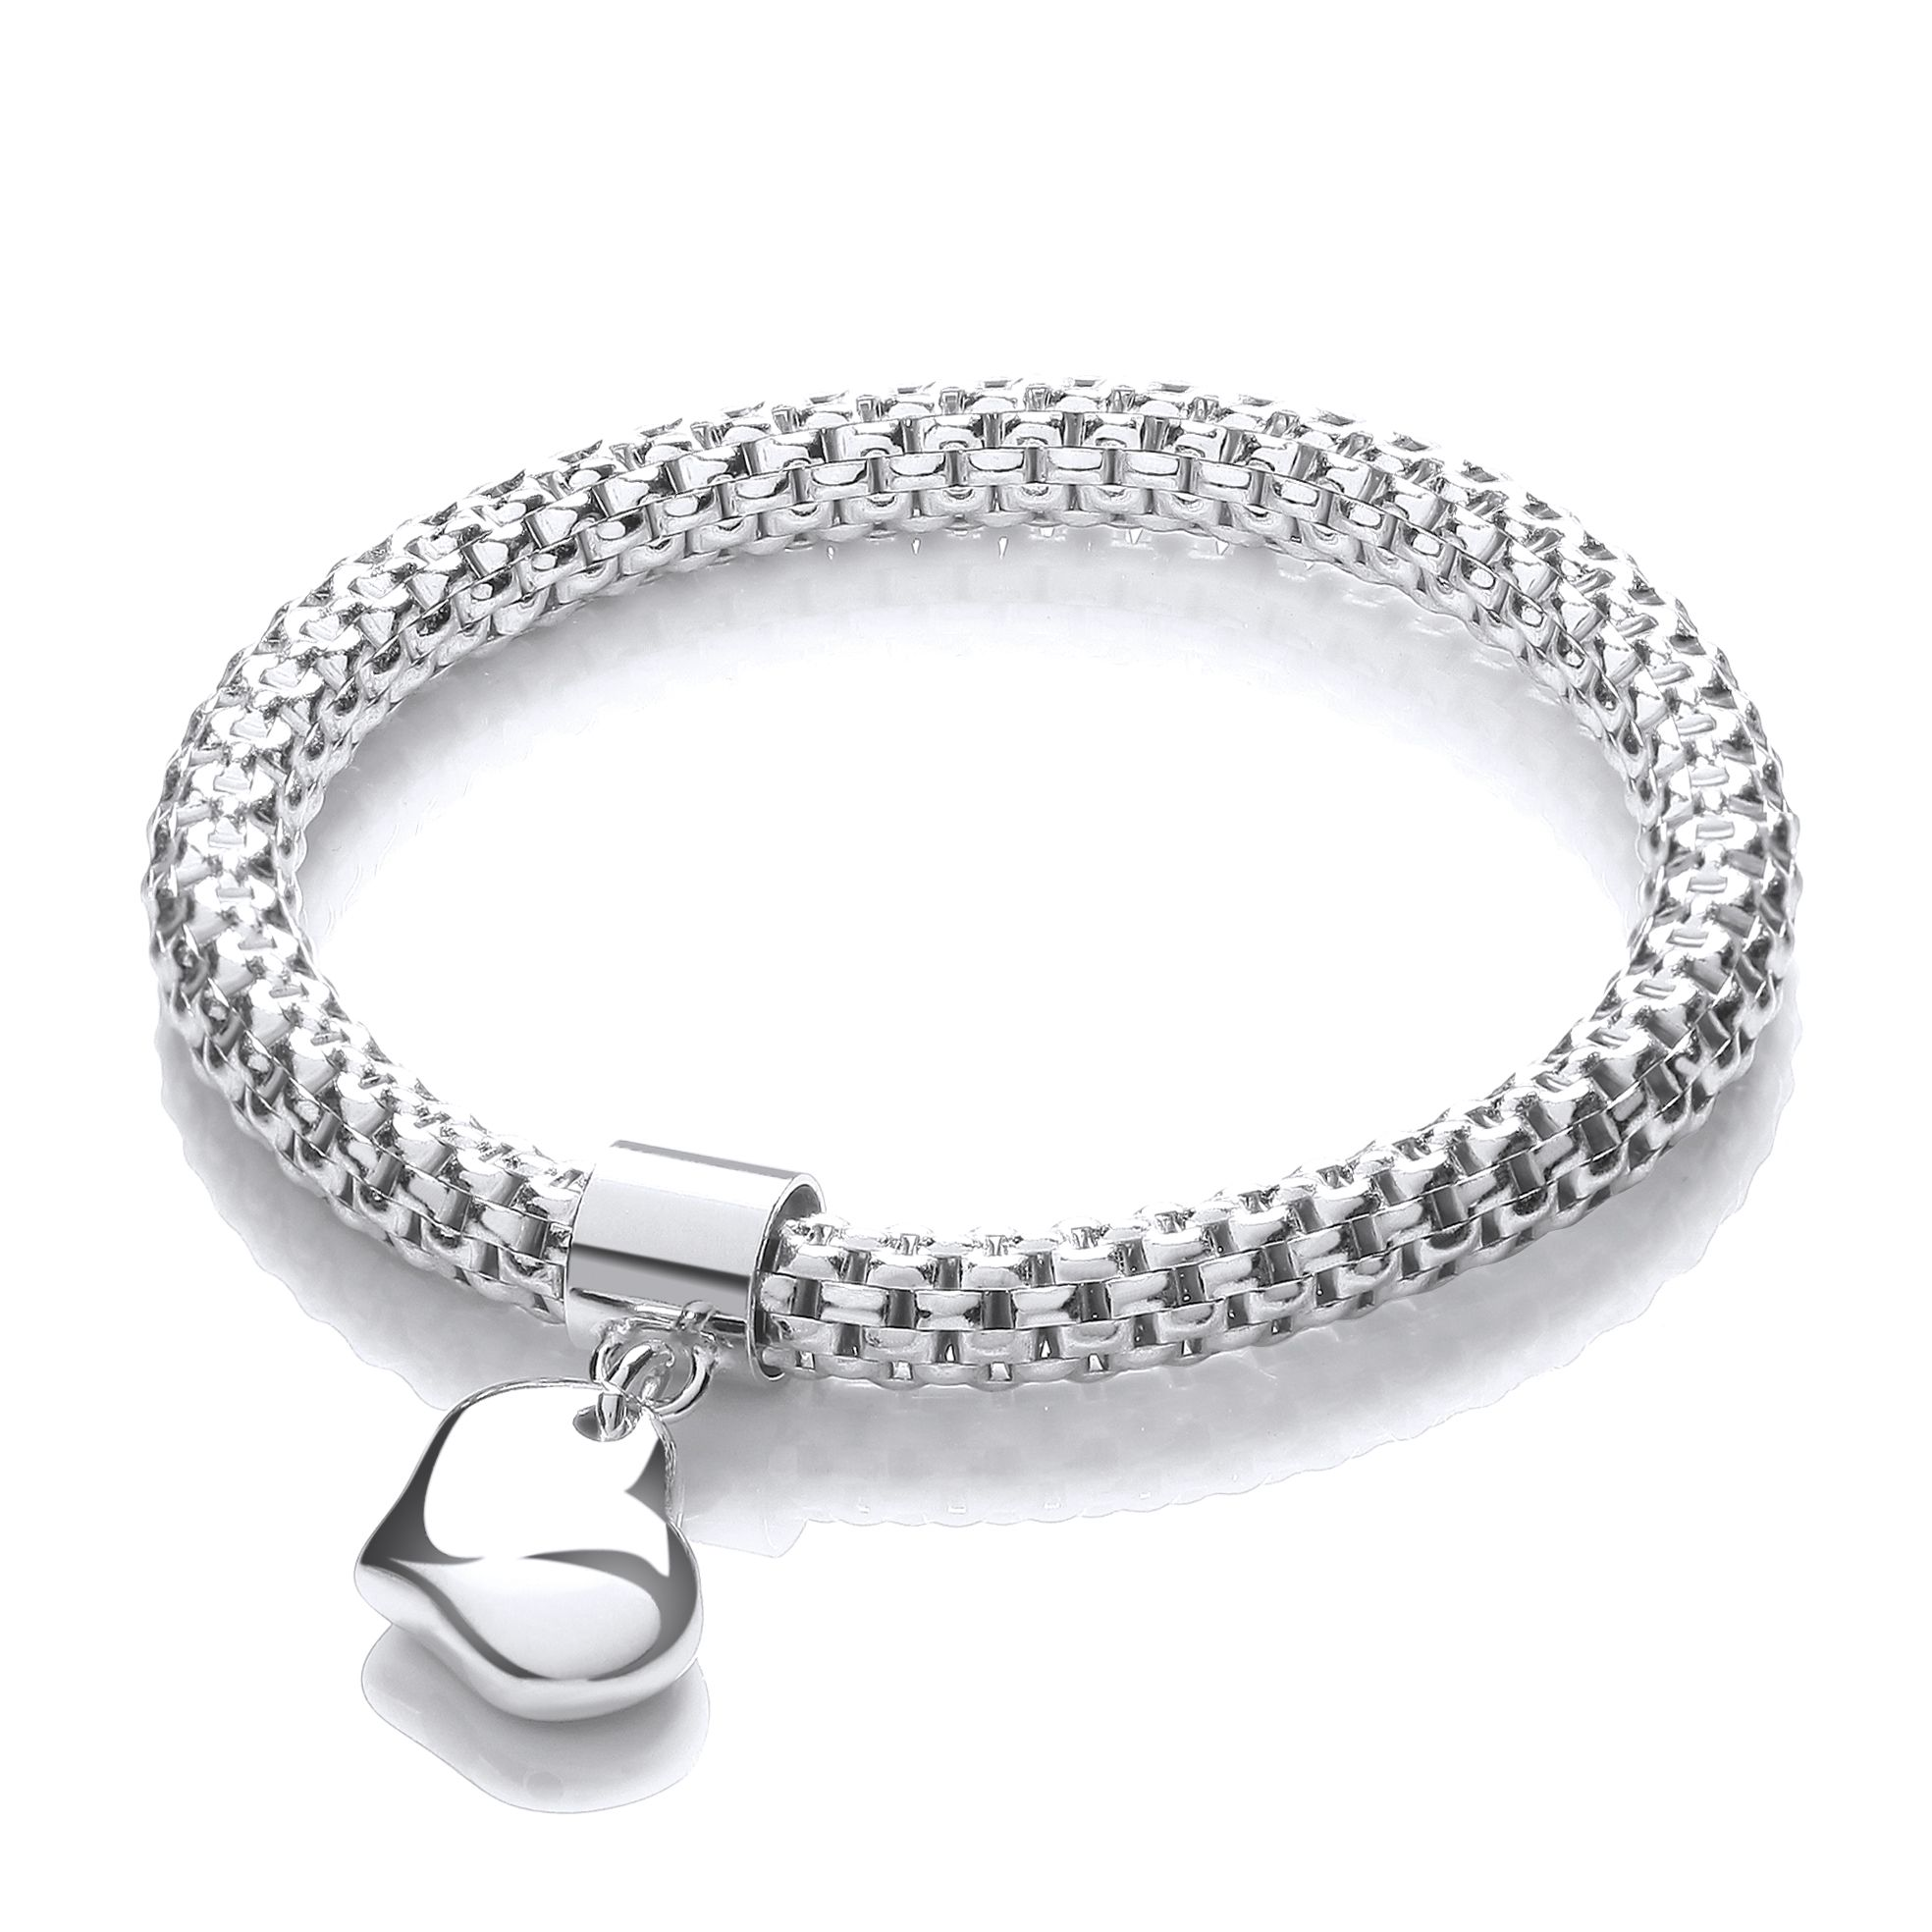 bangle heart link bangles asp silver double fastening school p seven inch bracelets charm sterling lock with uk